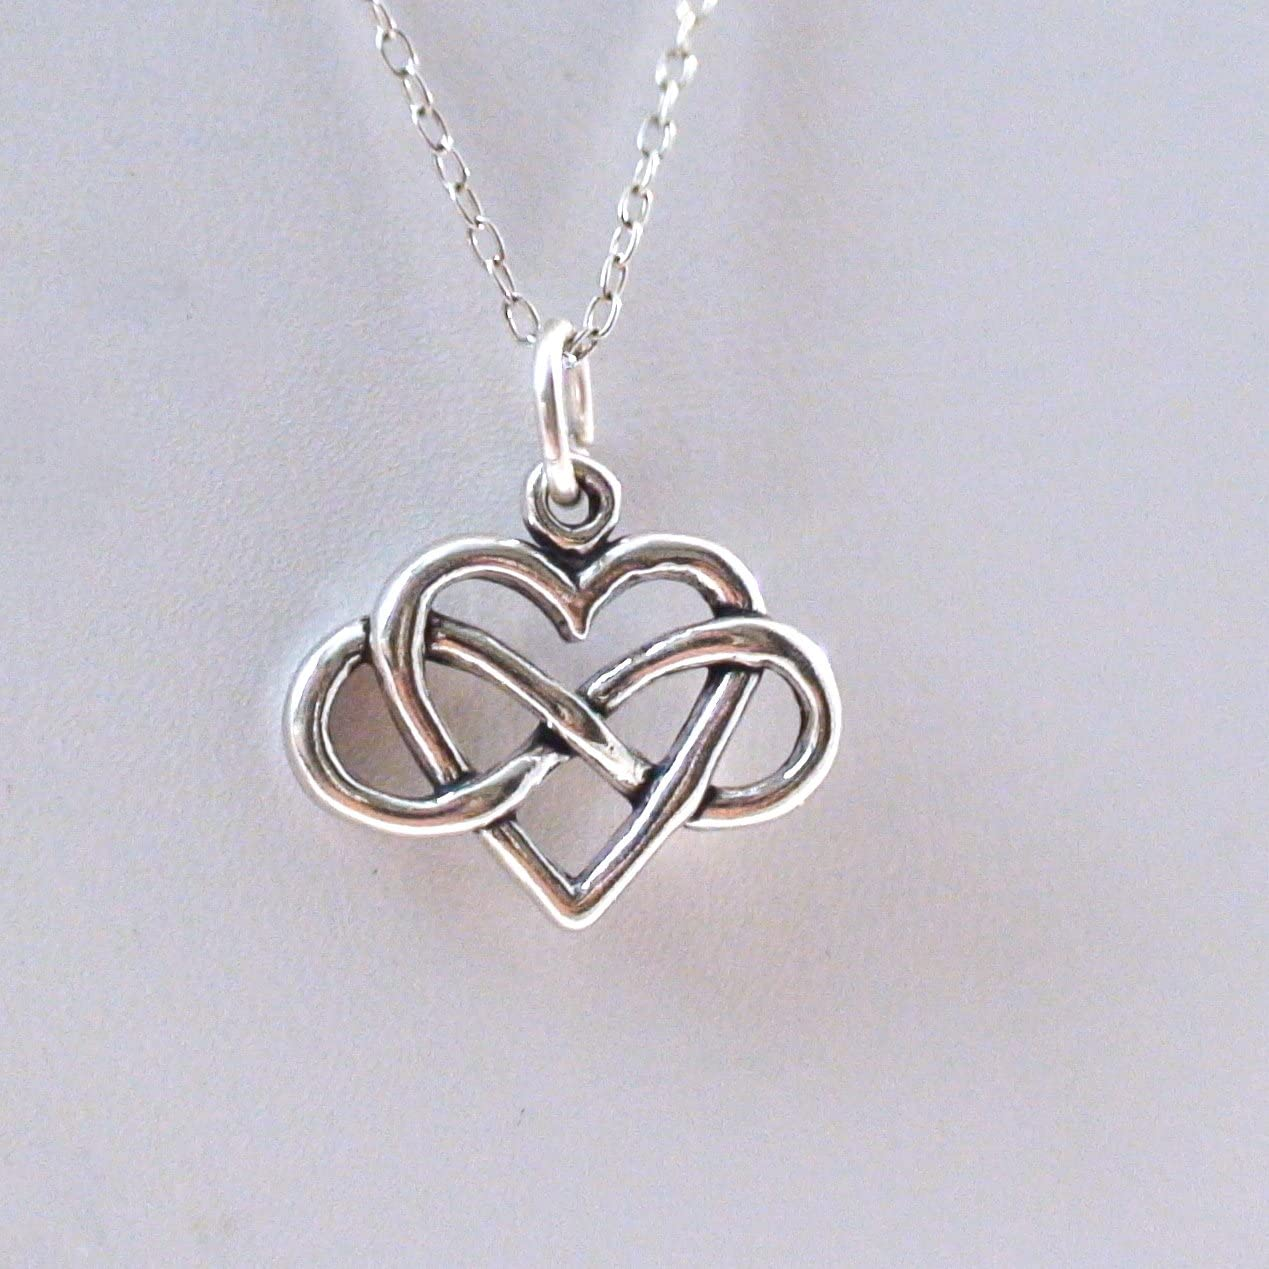 FashionJunkie4Life Sterling Silver Small Infinity Heart Charm Necklace 18 Chain